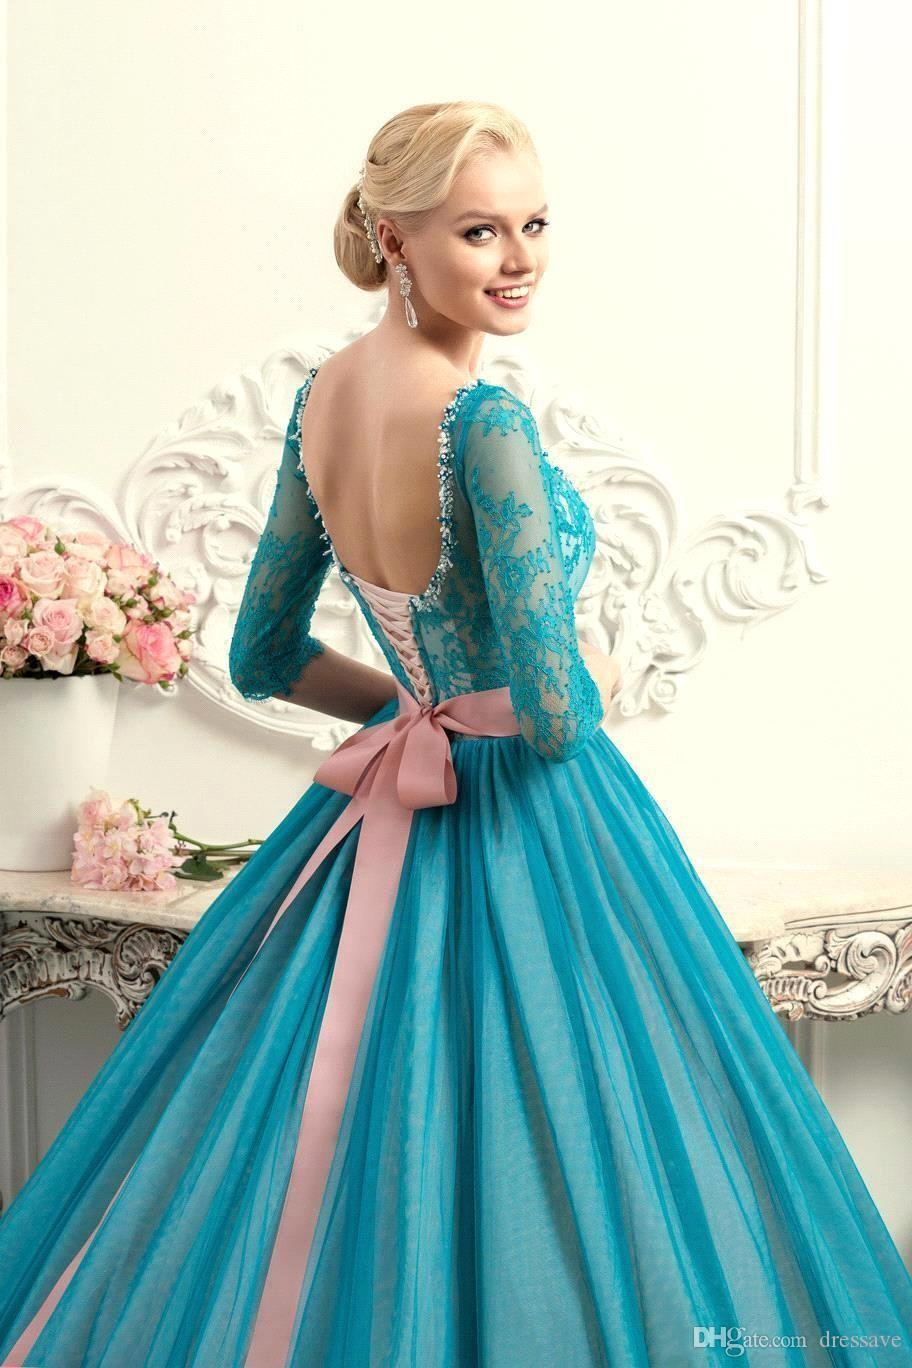 2017 New Sexy Teal Hunter Lace Ball Gown Plus Size Quinceanera Dresses Scoop Lace Up with Half Sleeve Floor Length Sweet 16 Prom Dress